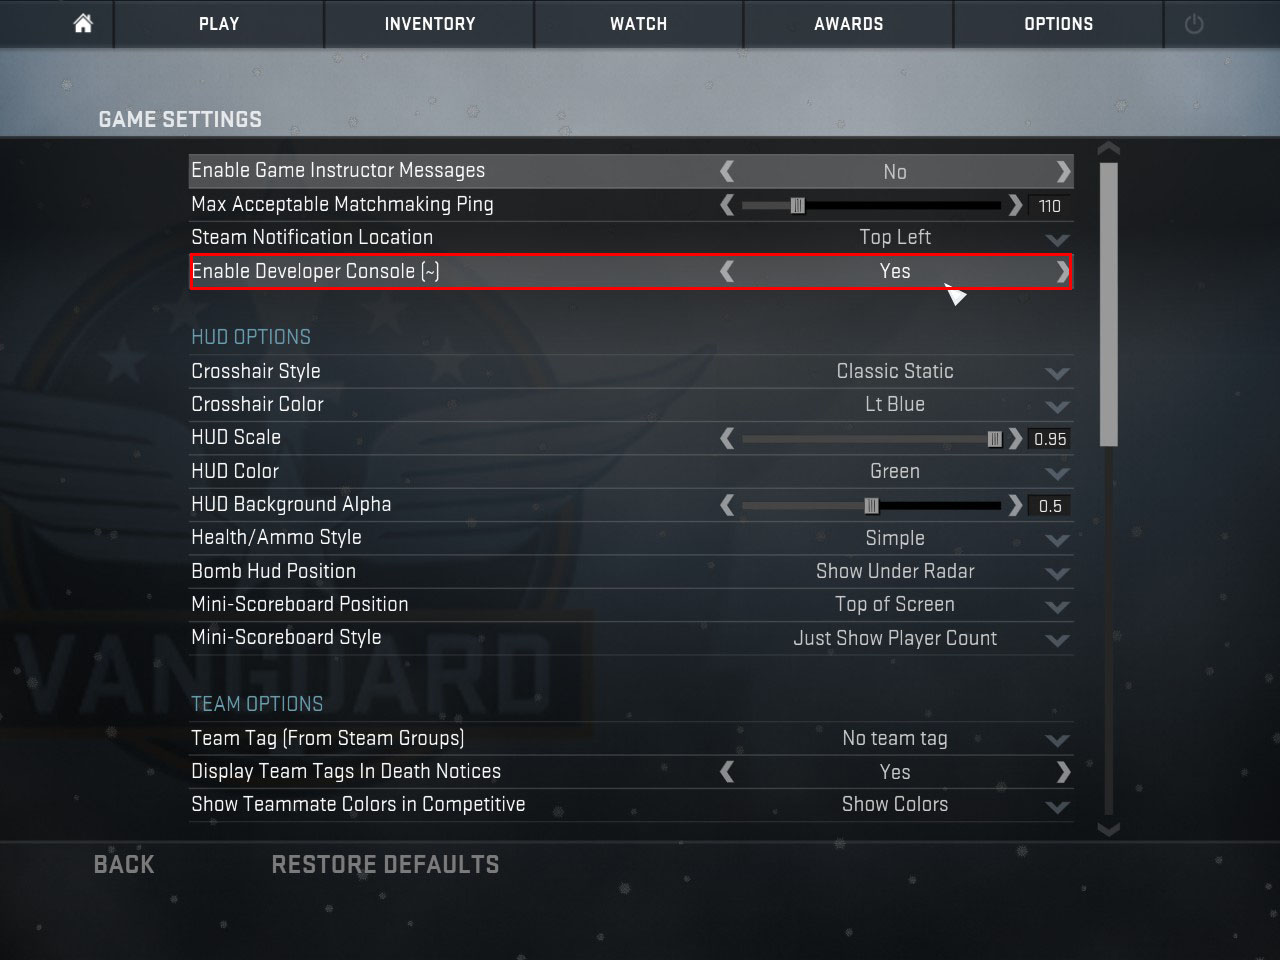 Go To Game Menu And Open Game Settings And Make Sure You Have